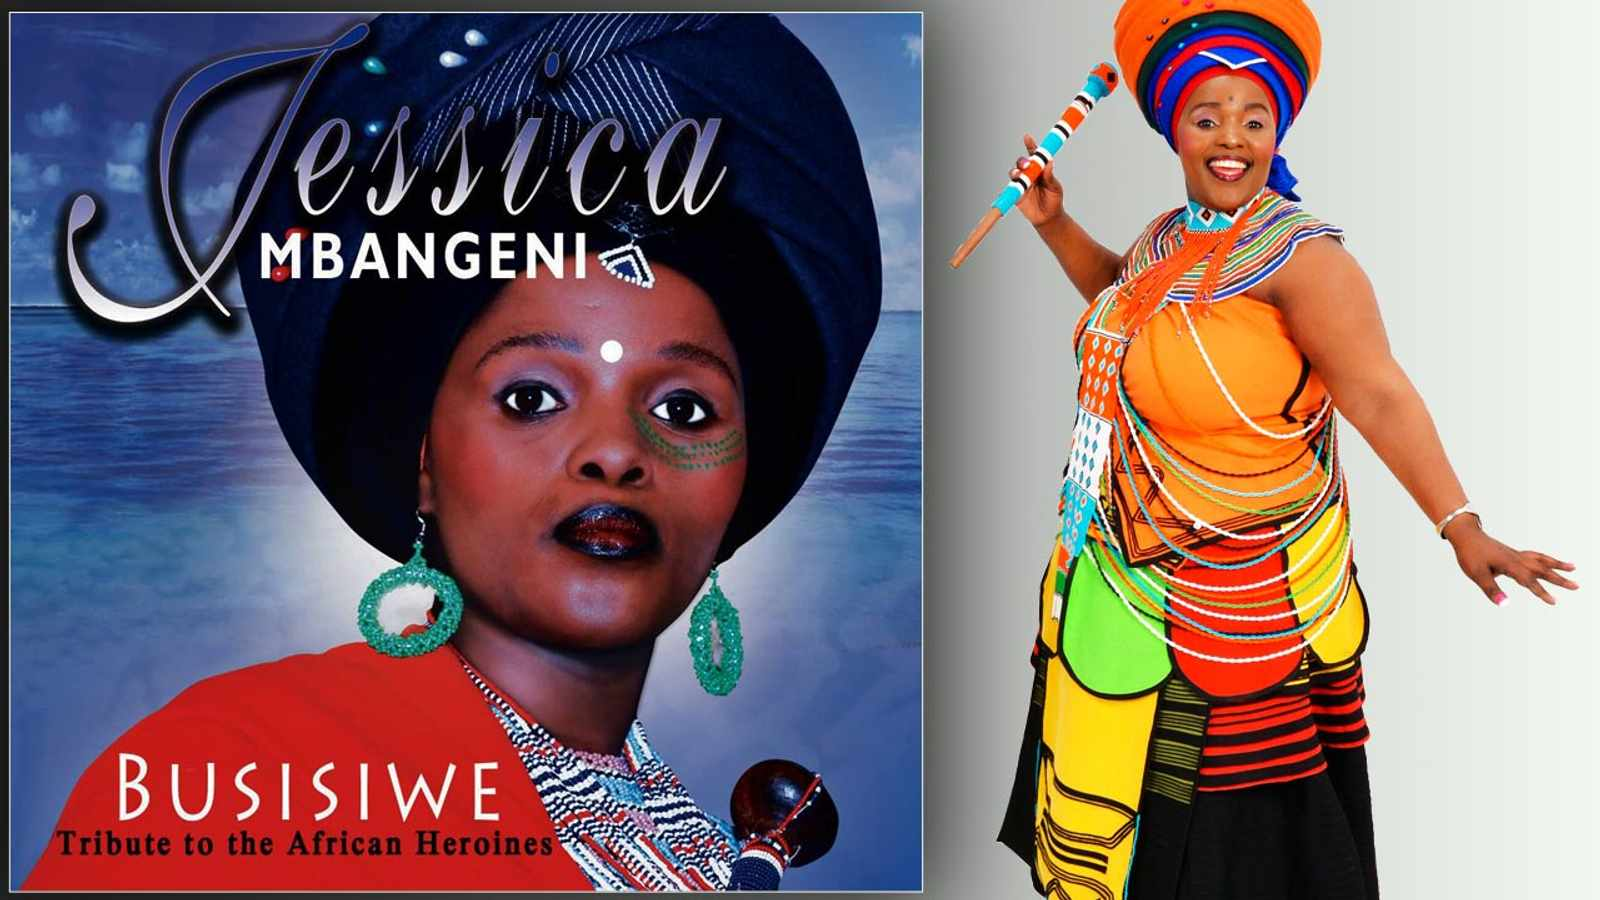 A custodian of Xhosa culture, and proud of it